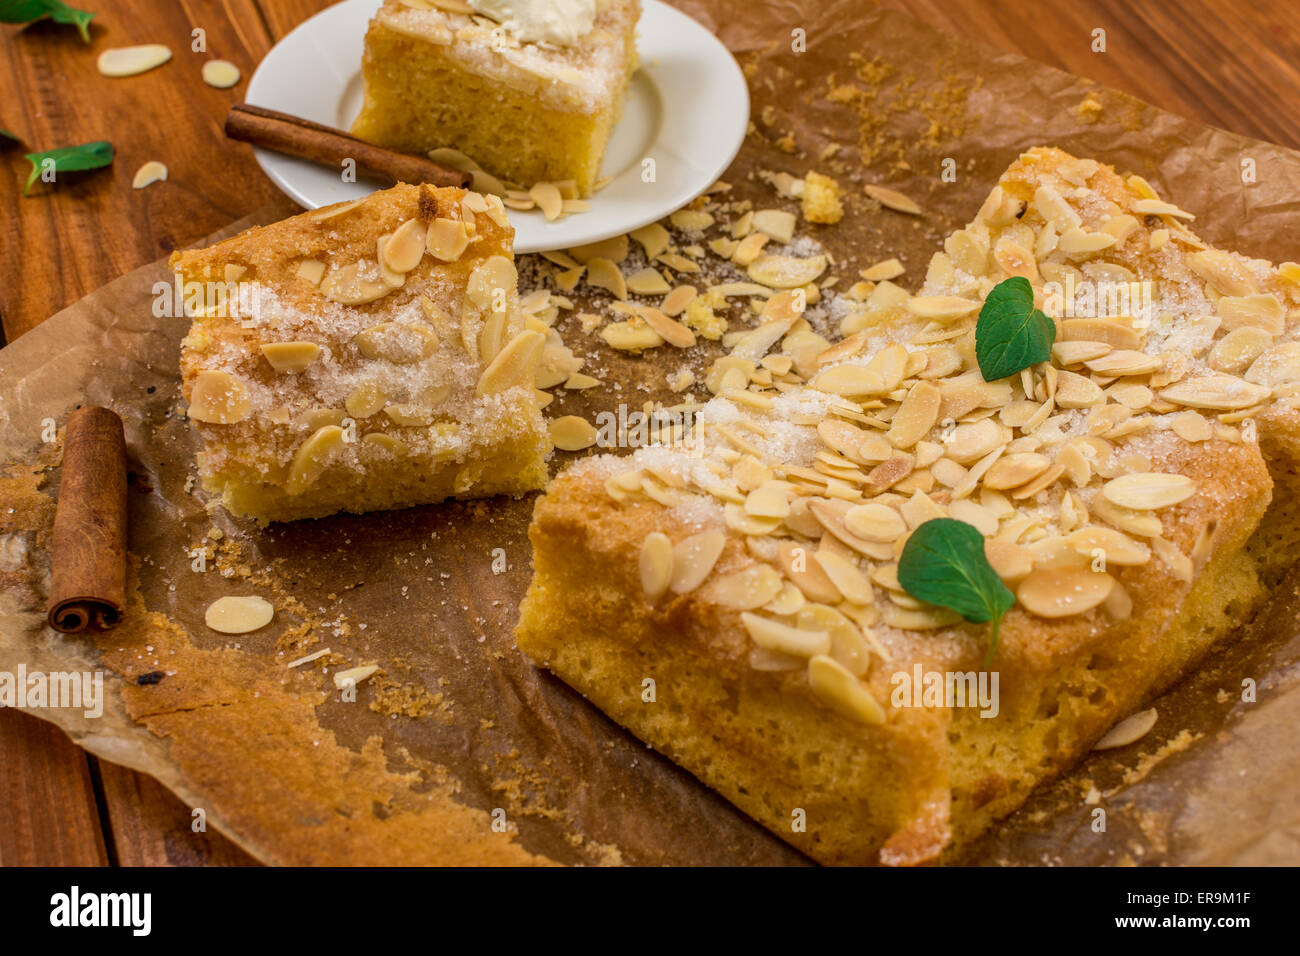 Almond dessert with sugar and mint leaf on wood table Stock Photo